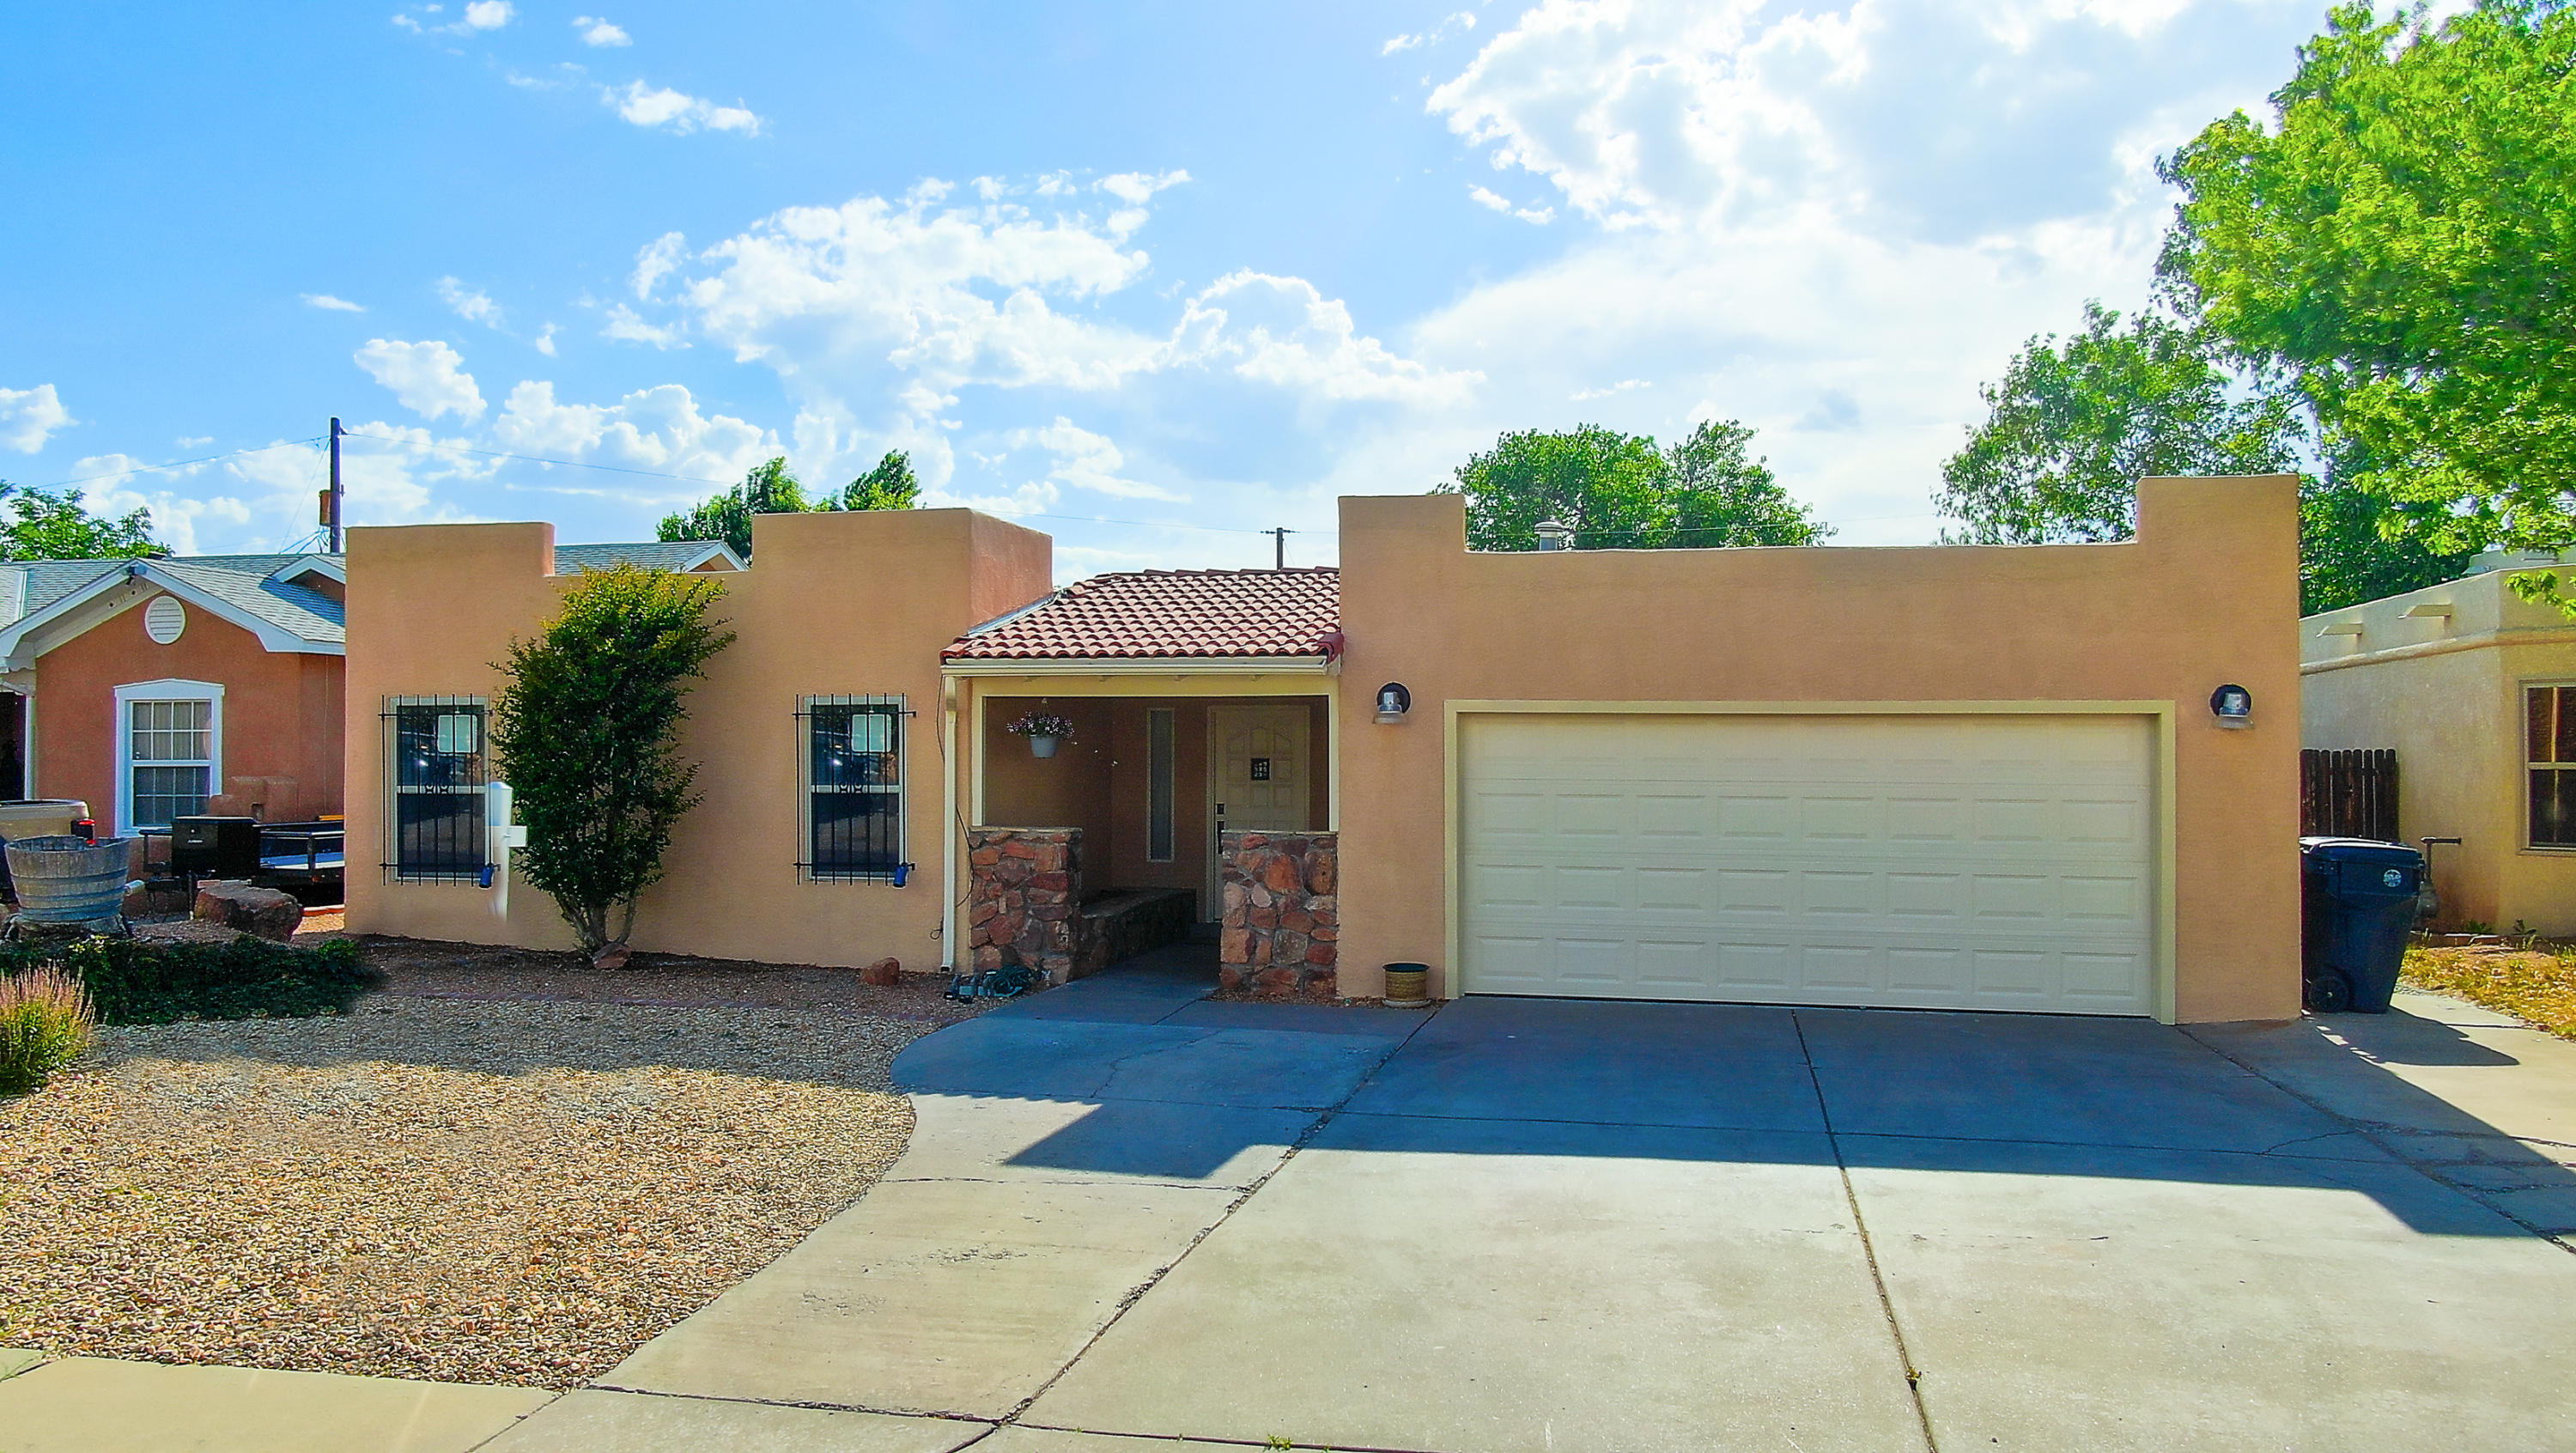 4209 PARSIFAL Street NE Property Photo - Albuquerque, NM real estate listing